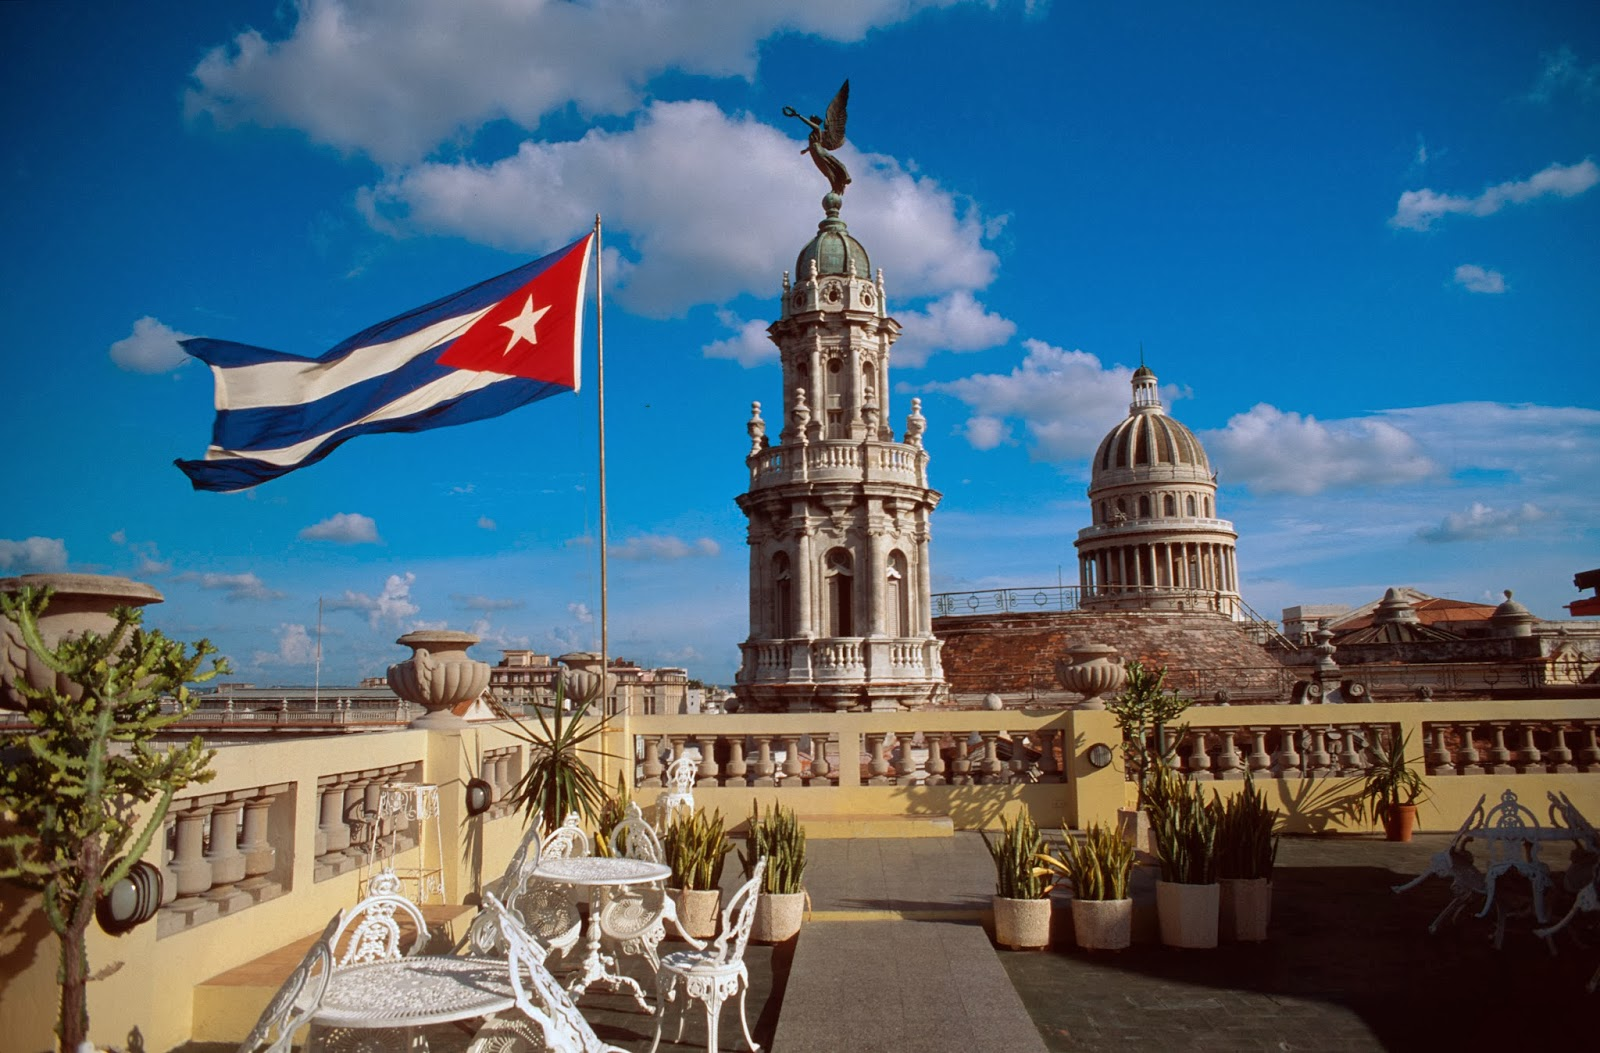 cuba dating 5 night key west and havana overnight singles cruise immerse yourself in cuba's cultural charms and get whisked away by the timeless sights and sounds.